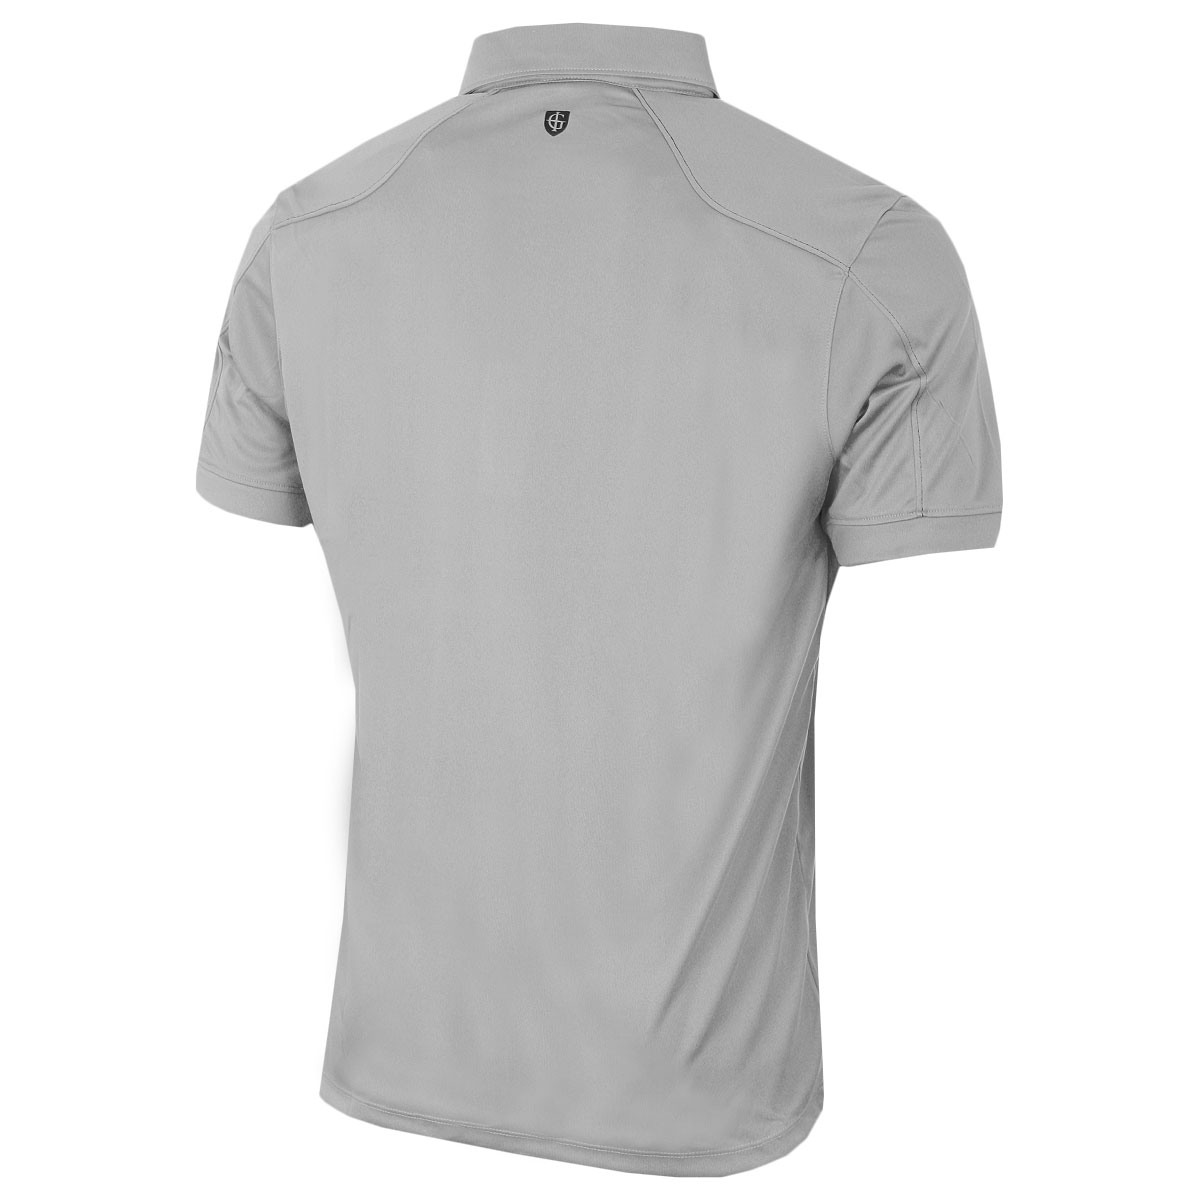 Island-Green-Mens-Golf-IGTS1648-Performance-Coolpass-Polo-Shirt-44-OFF-RRP thumbnail 18